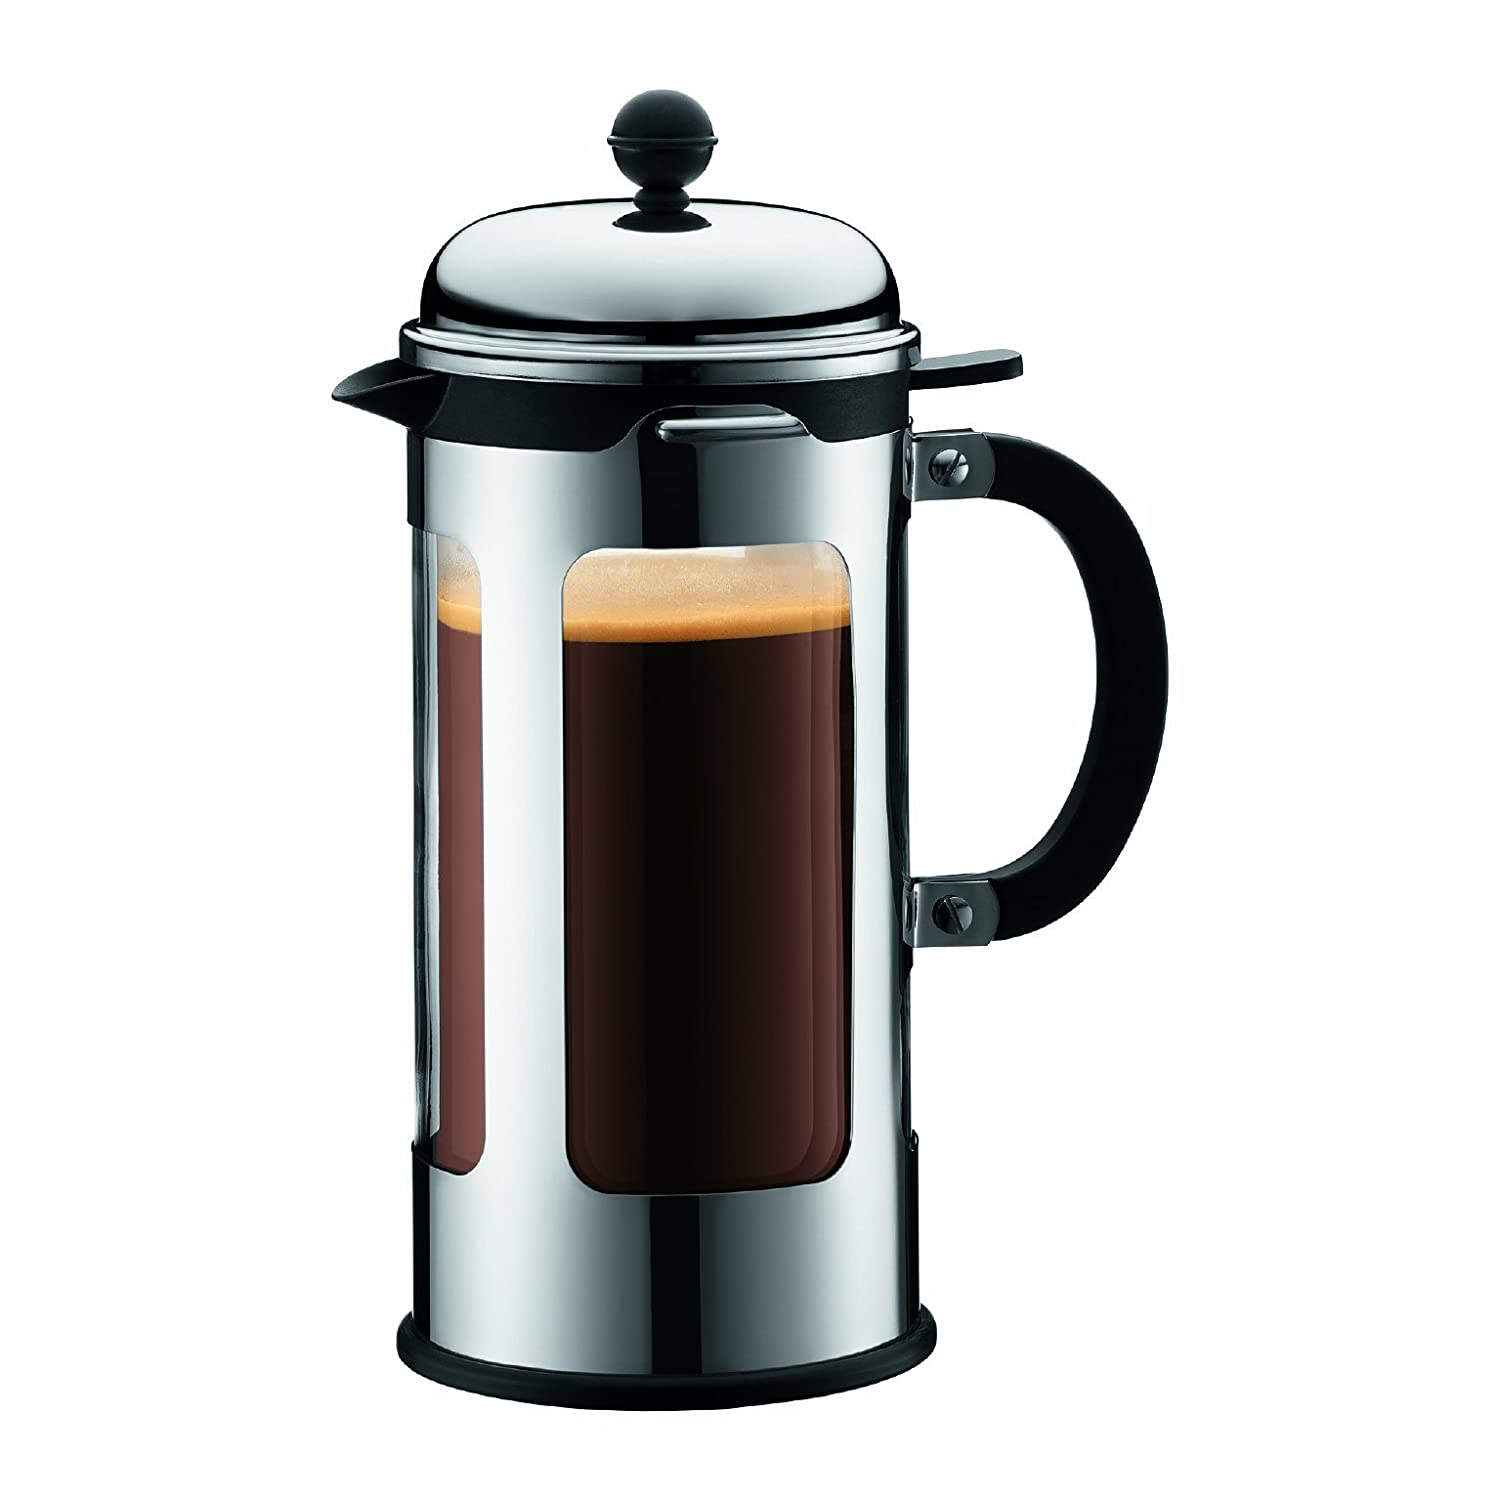 What Are The Best Insulated French Press Coffee Makers